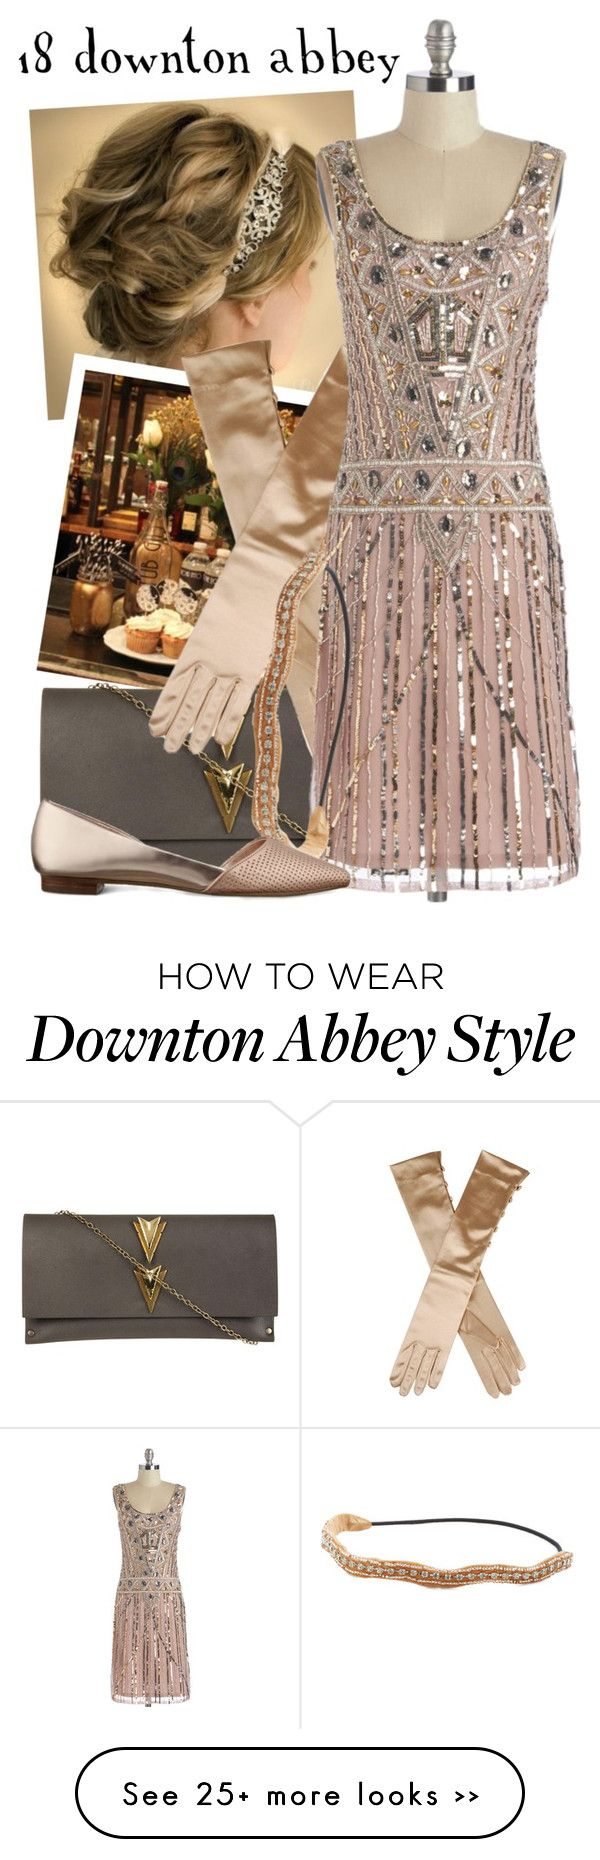 """18 Downton Abbey -- DMA Challenge"" by evil-laugh on Polyvore"